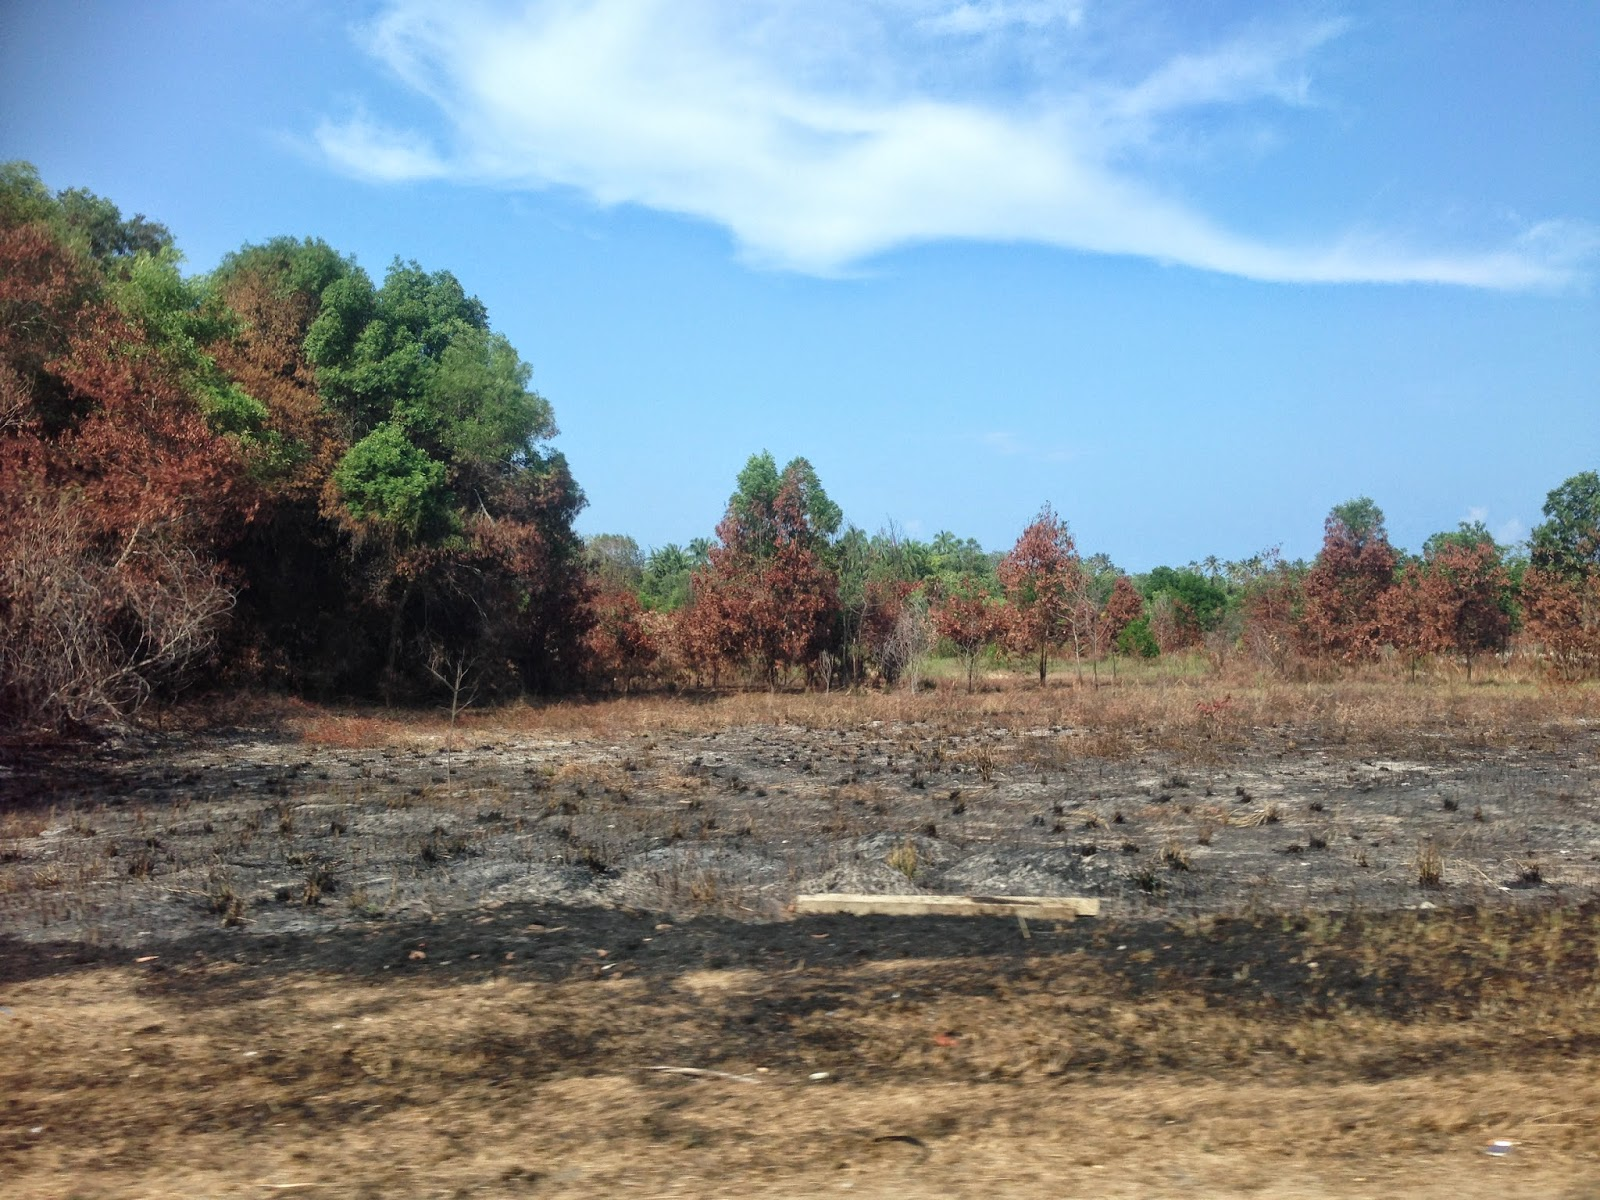 More burned foliage along the way in Terengganu